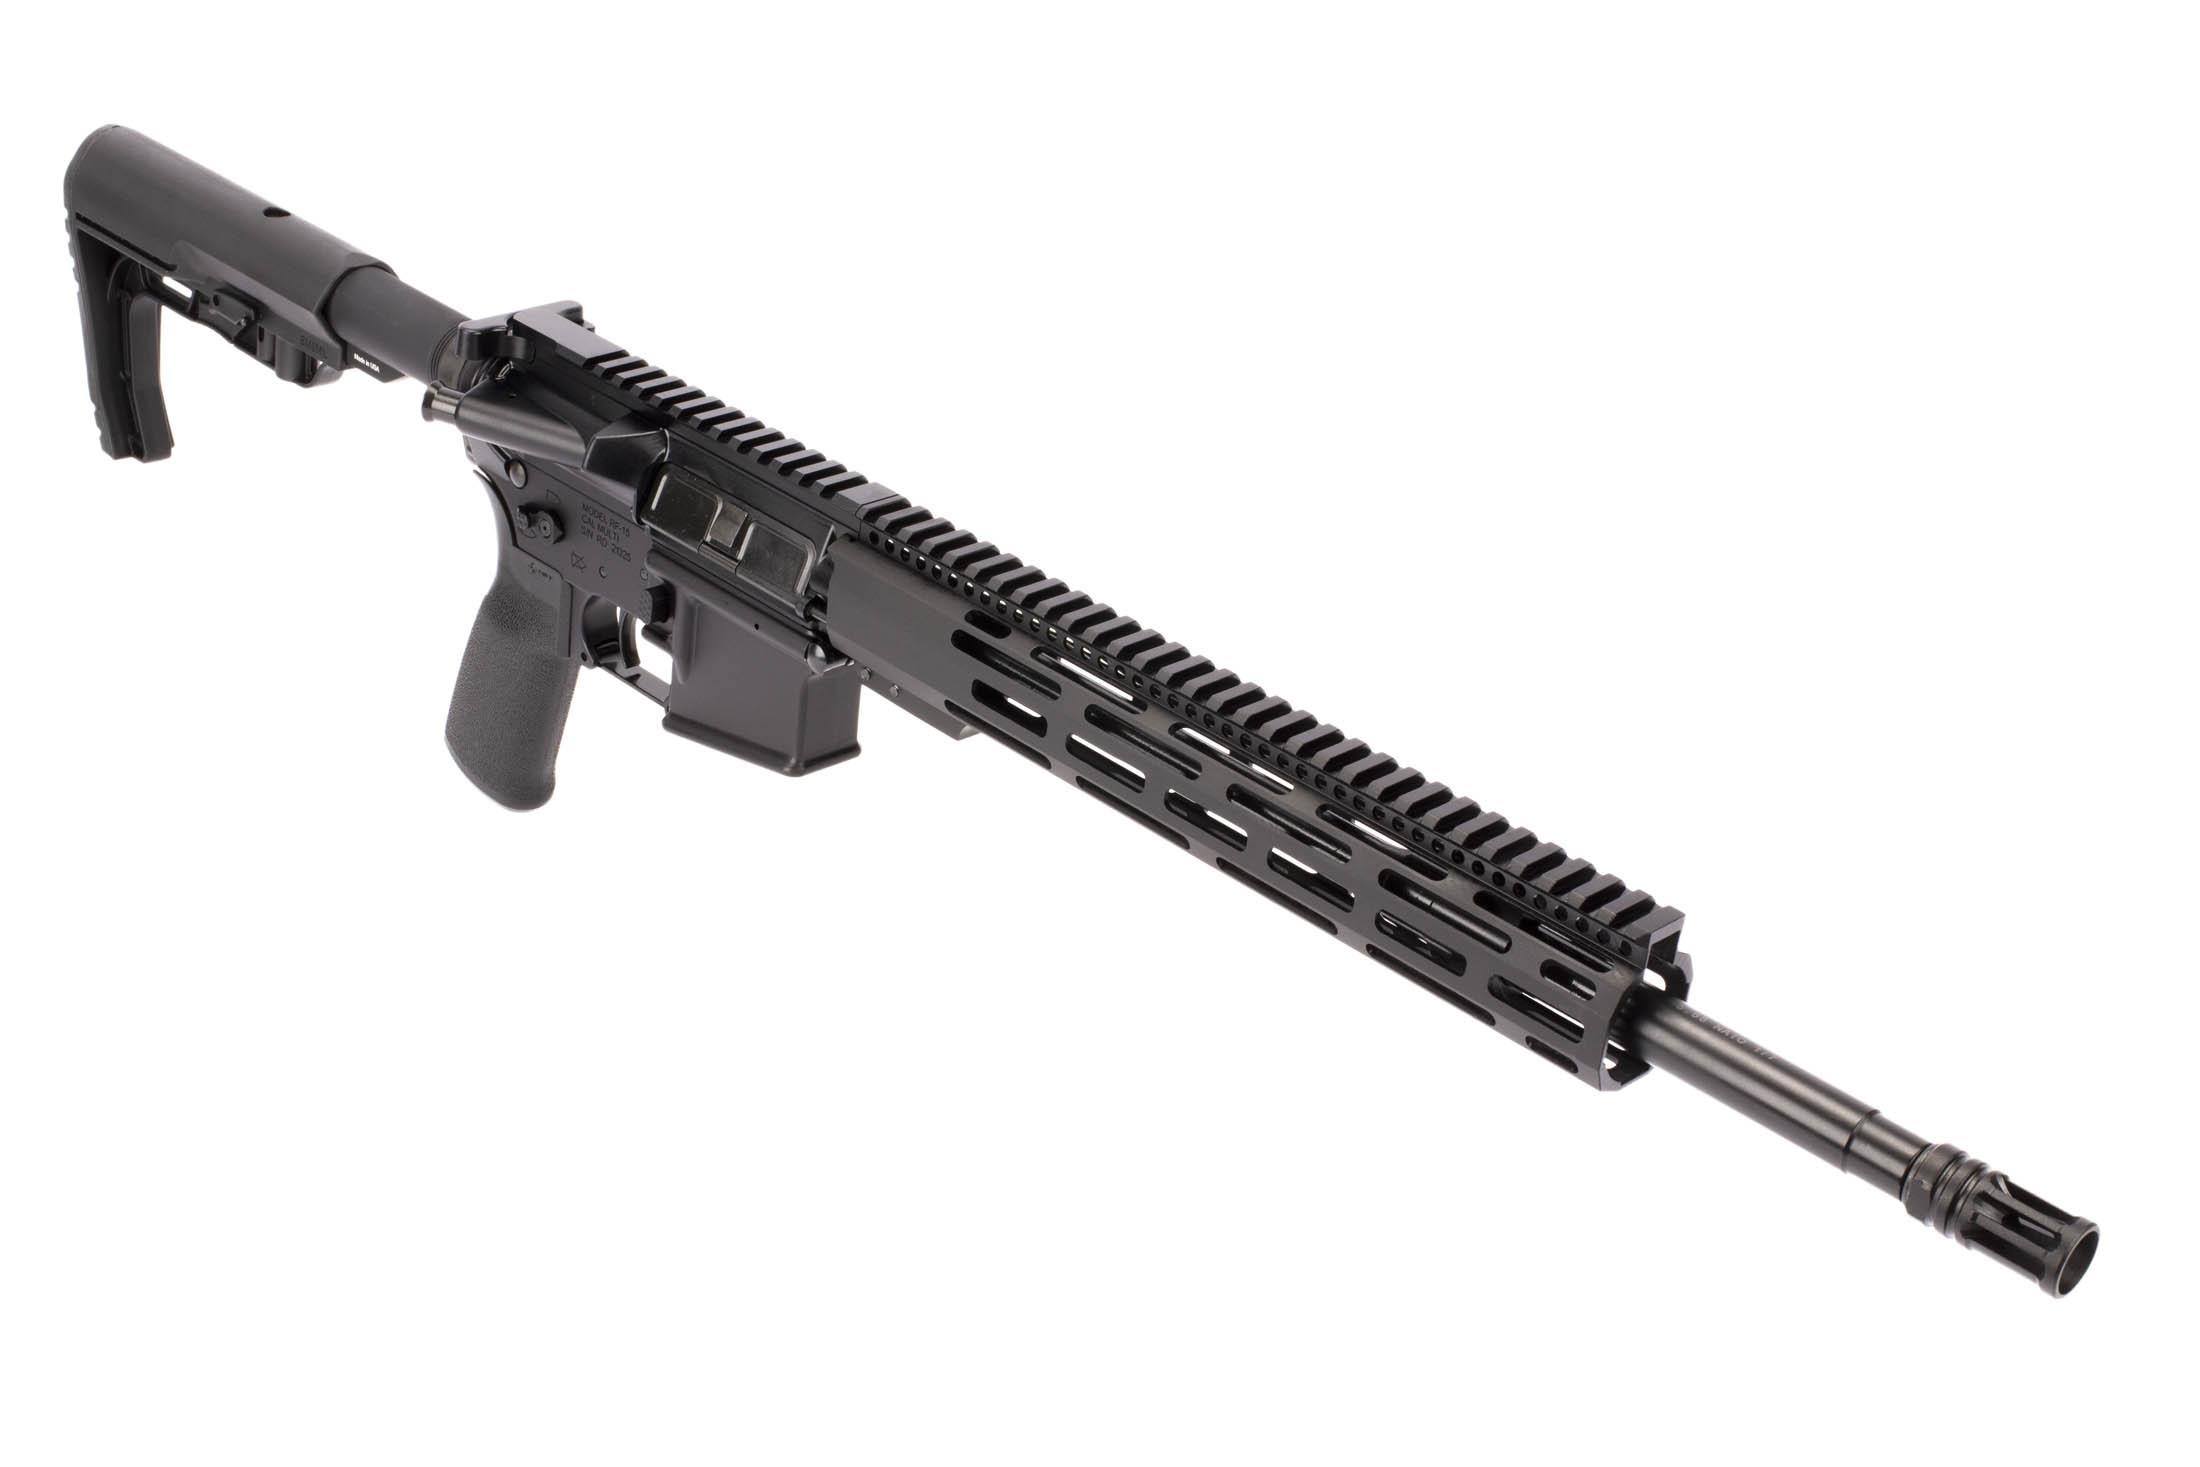 Radical Firearms 16in 5.56 NATO mid-length complete AR-15 with 12in M-LOK FCR Gen 3 rail